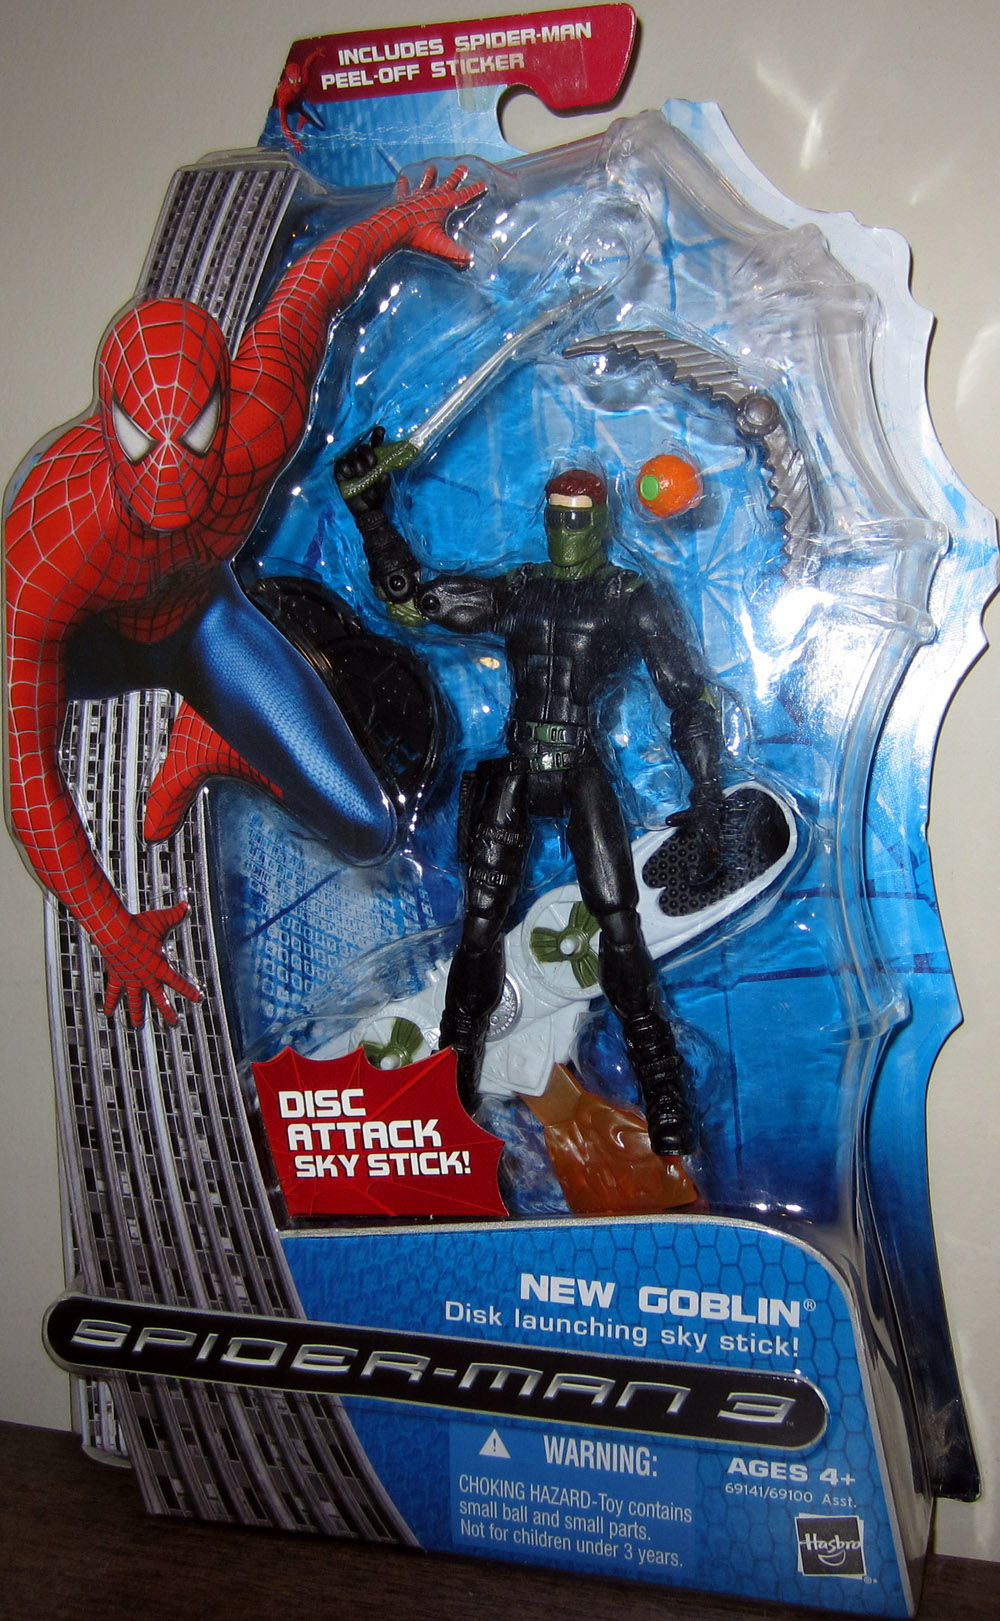 New Goblin (Disk launching sky stick, Spider-Man 3)